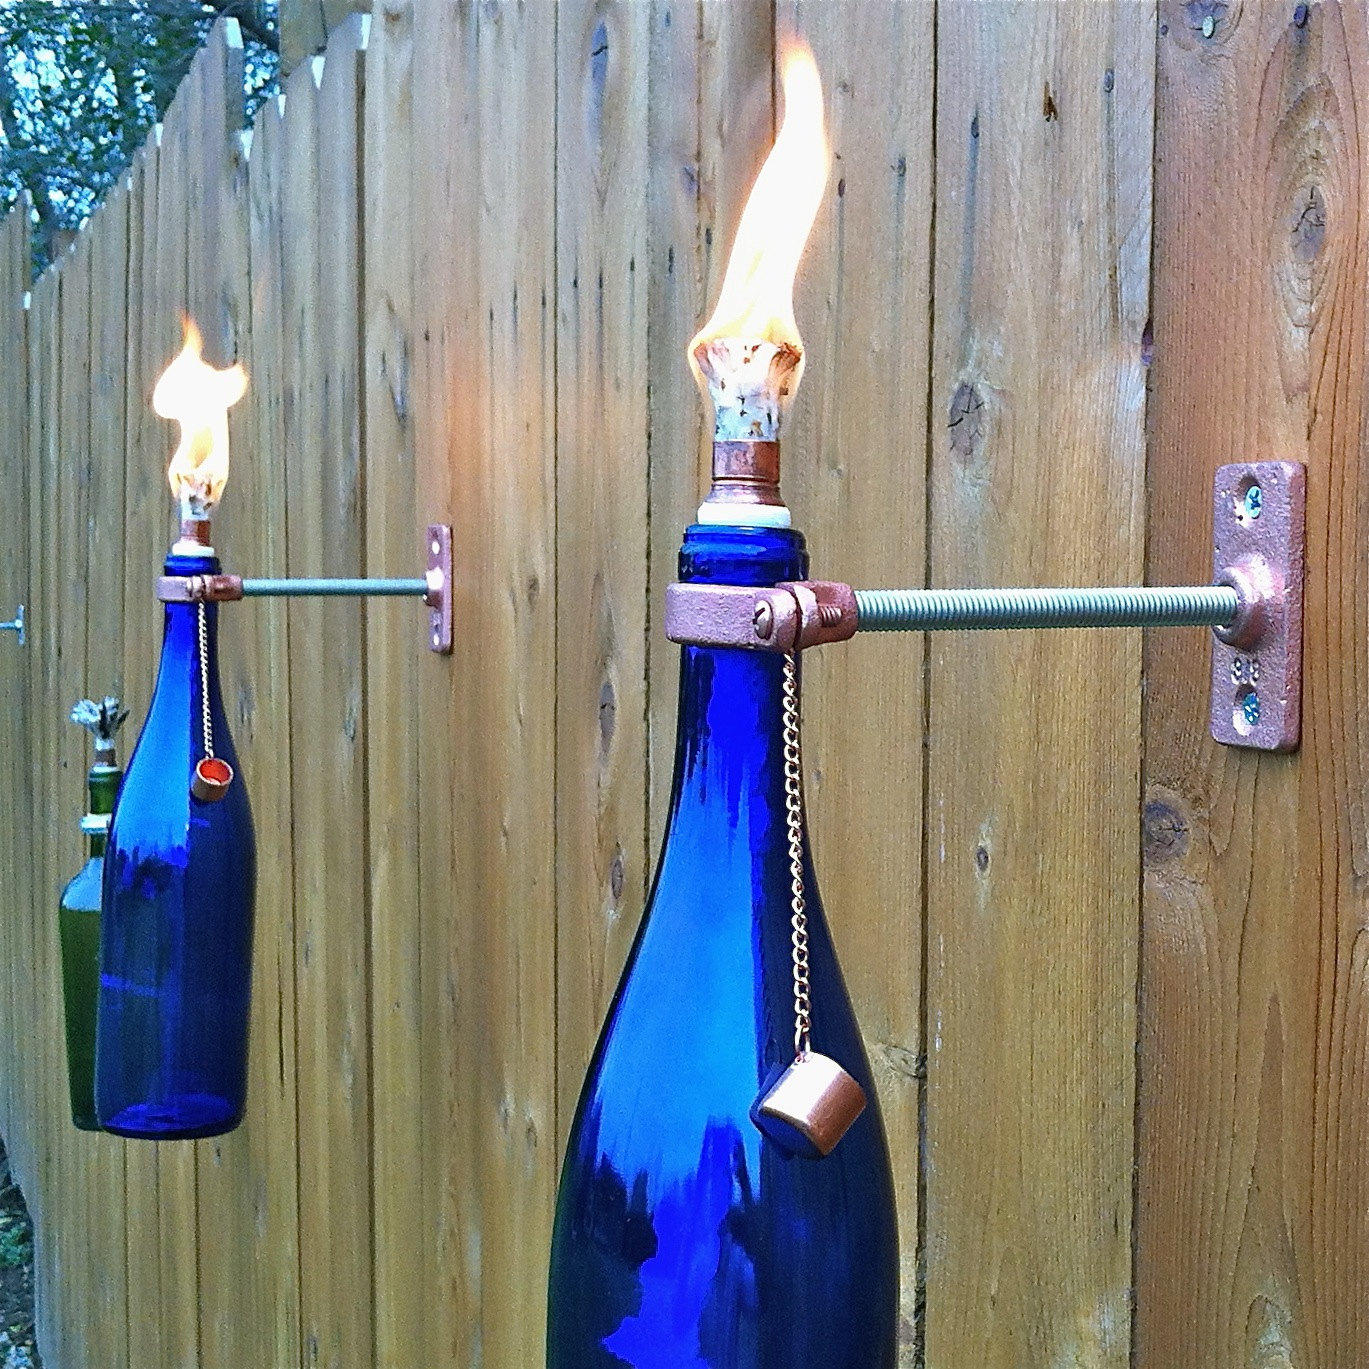 Marvelous Hanging Oil Lamps Tiki Torches U0026 Wall Vases By GreatBottlesofFire